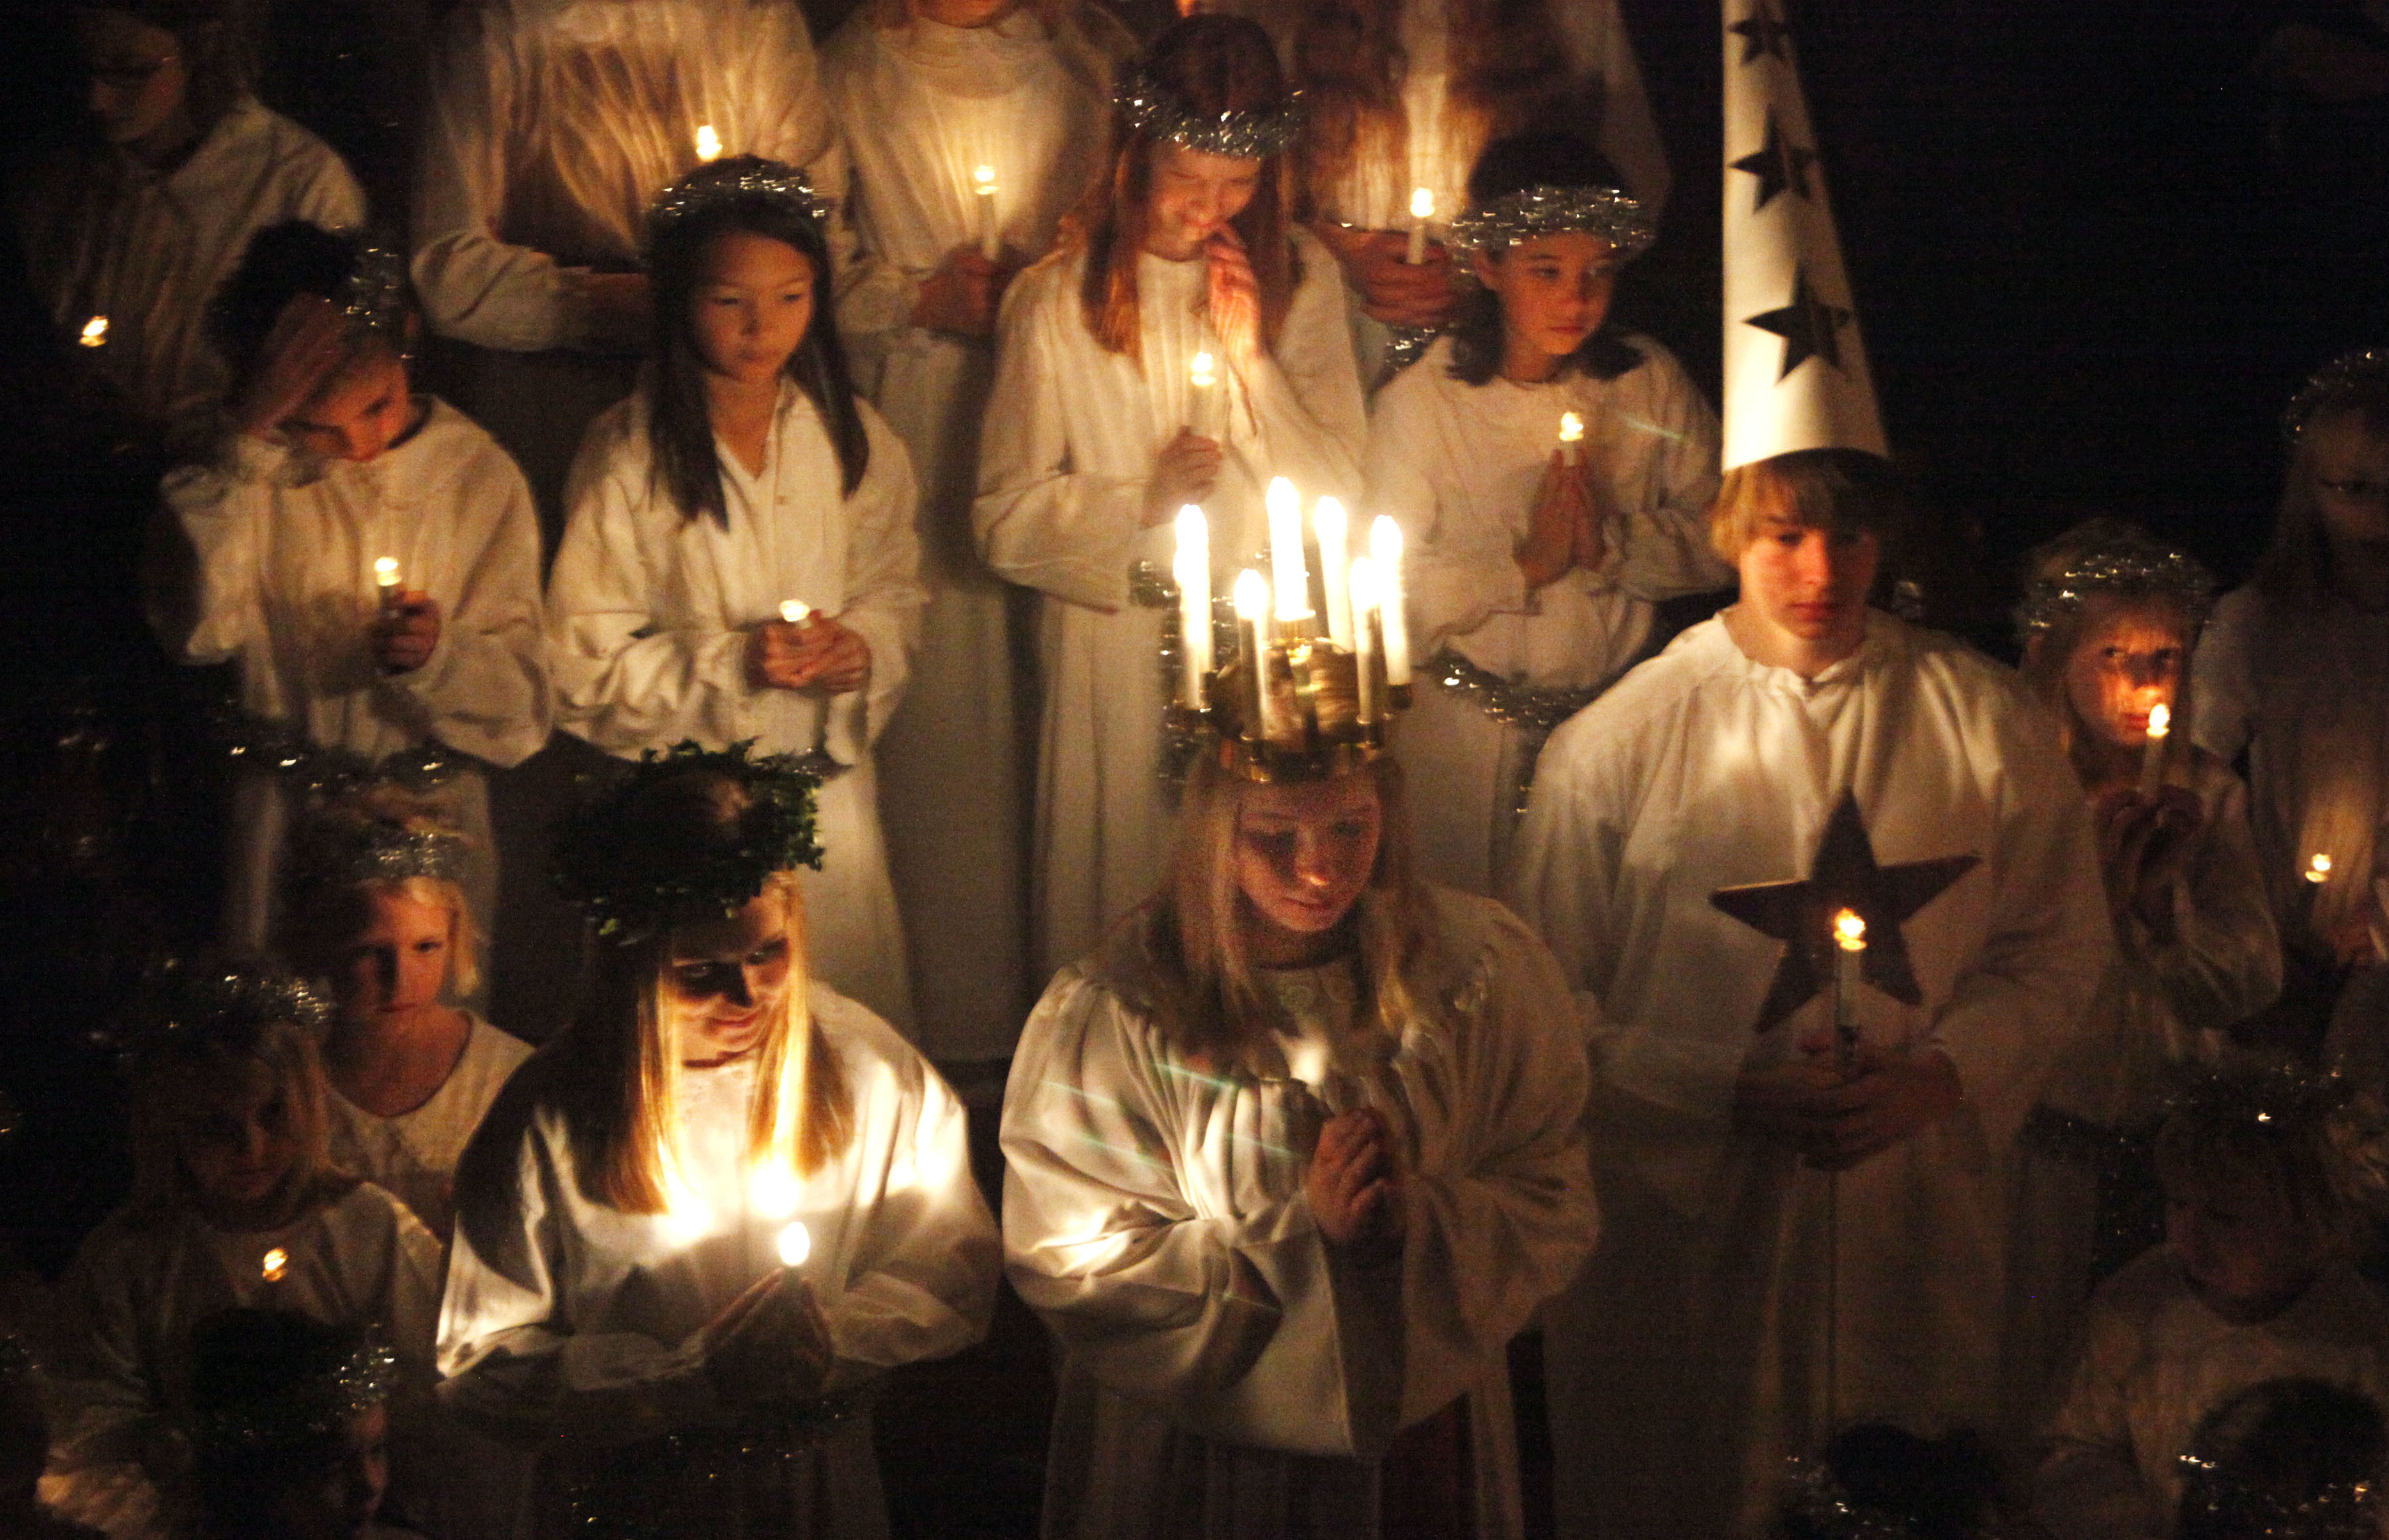 In Sweden and other Scandinavian countries — and Minnesota — St. Lucia is celebrated on Dec. 13.